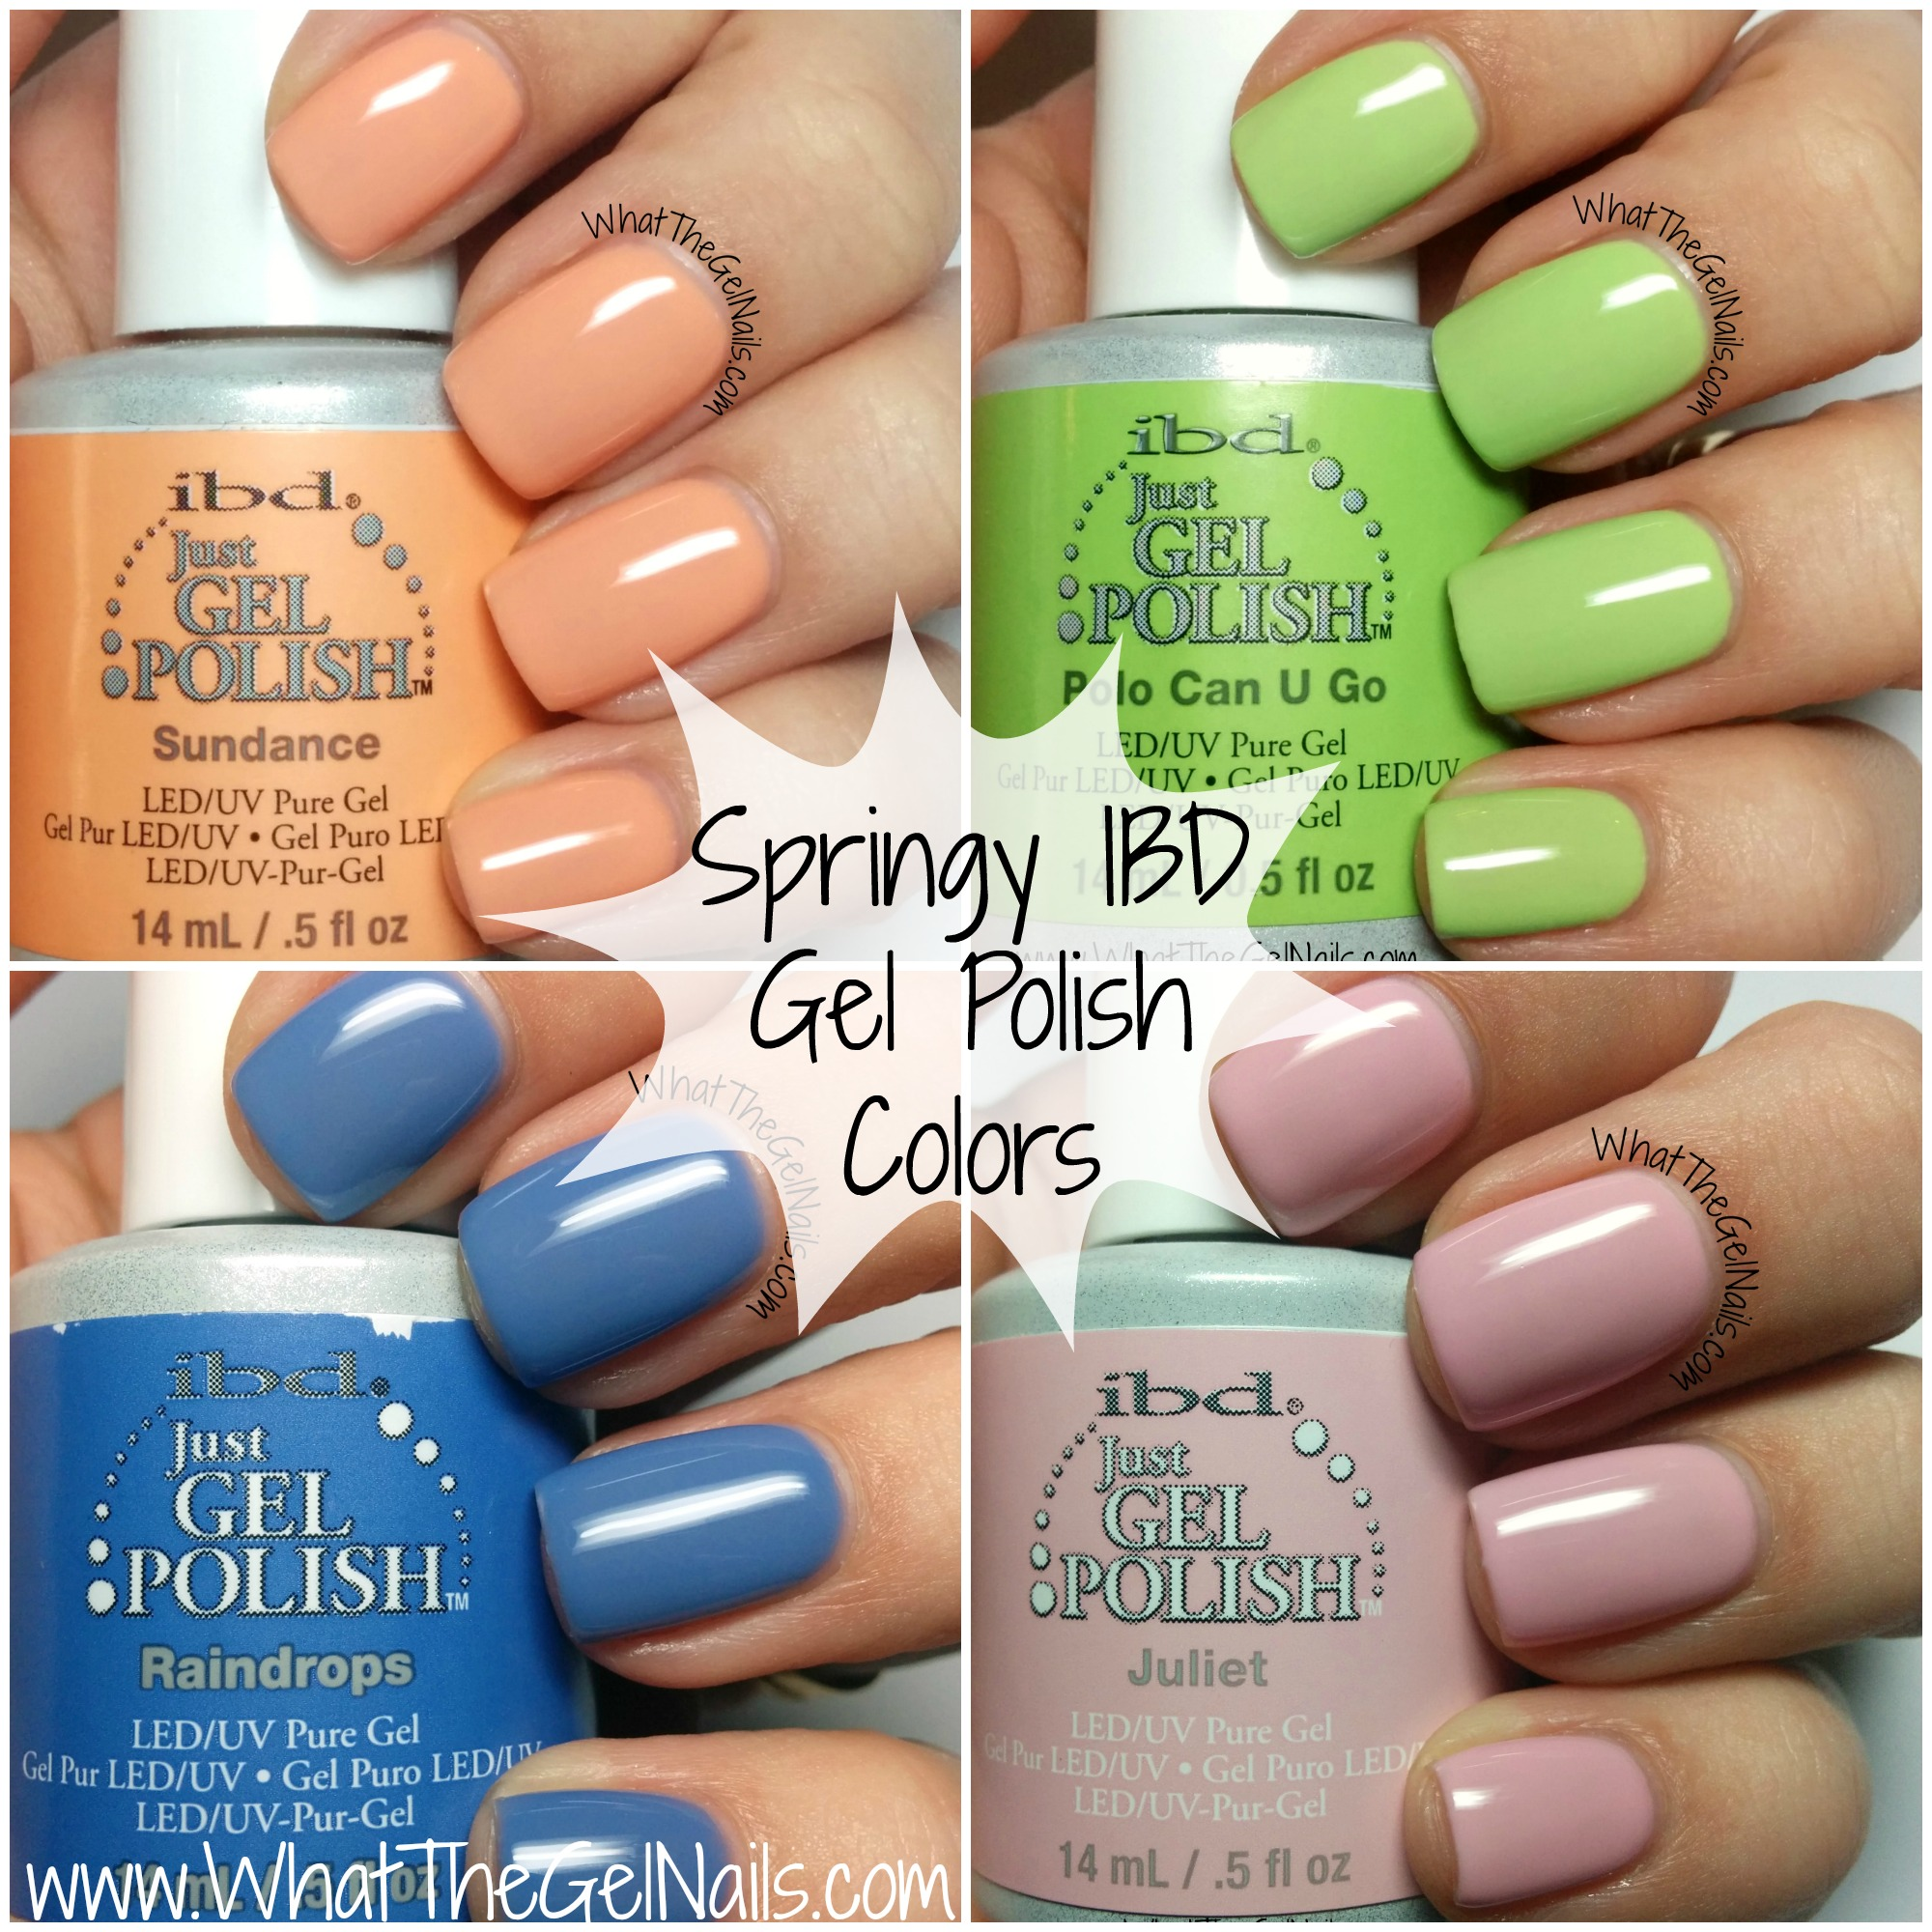 springy ibd just gel polish colors